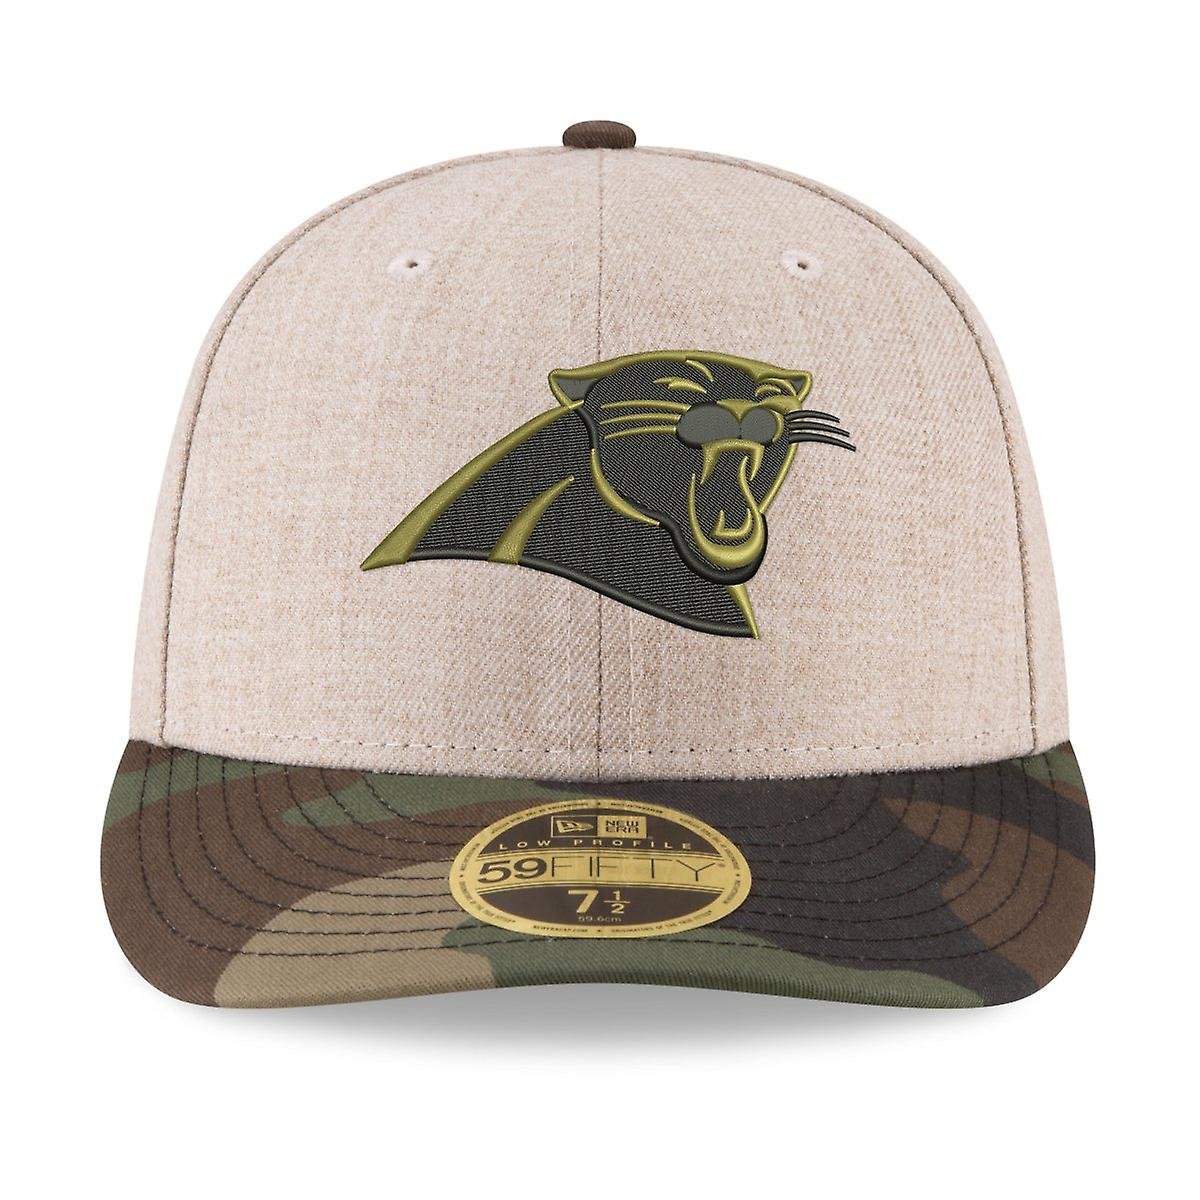 buy popular 5aa48 0db0c New era 59Fifty LP fitted cap - NFL Carolina Panthers